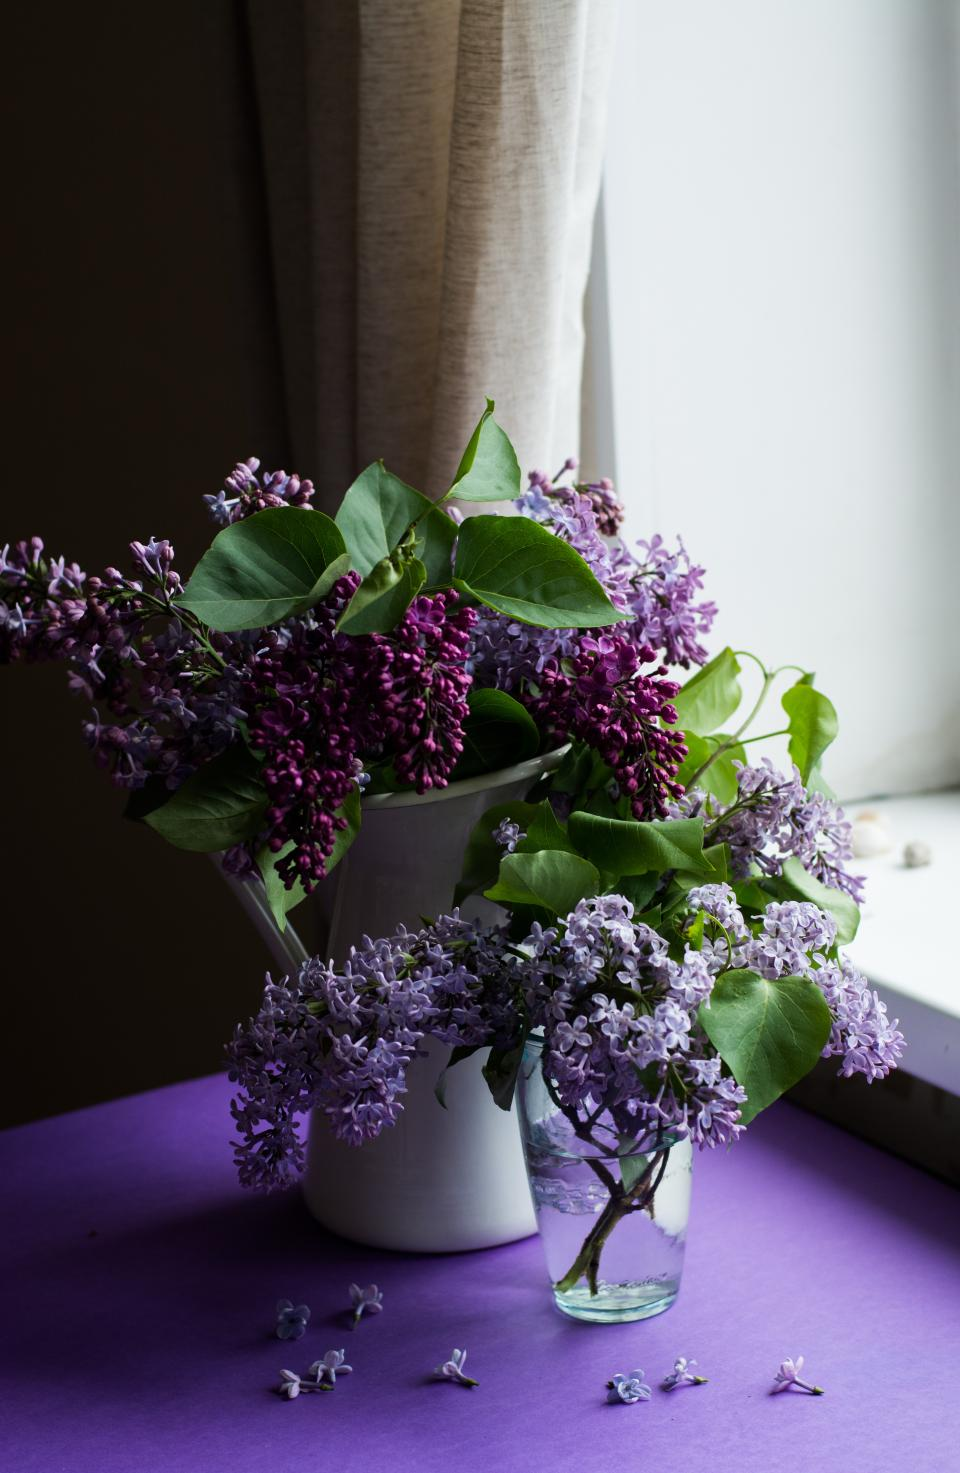 purple, flower, bloom, blossom, green, leaf, nature, vase, petals, interior, display